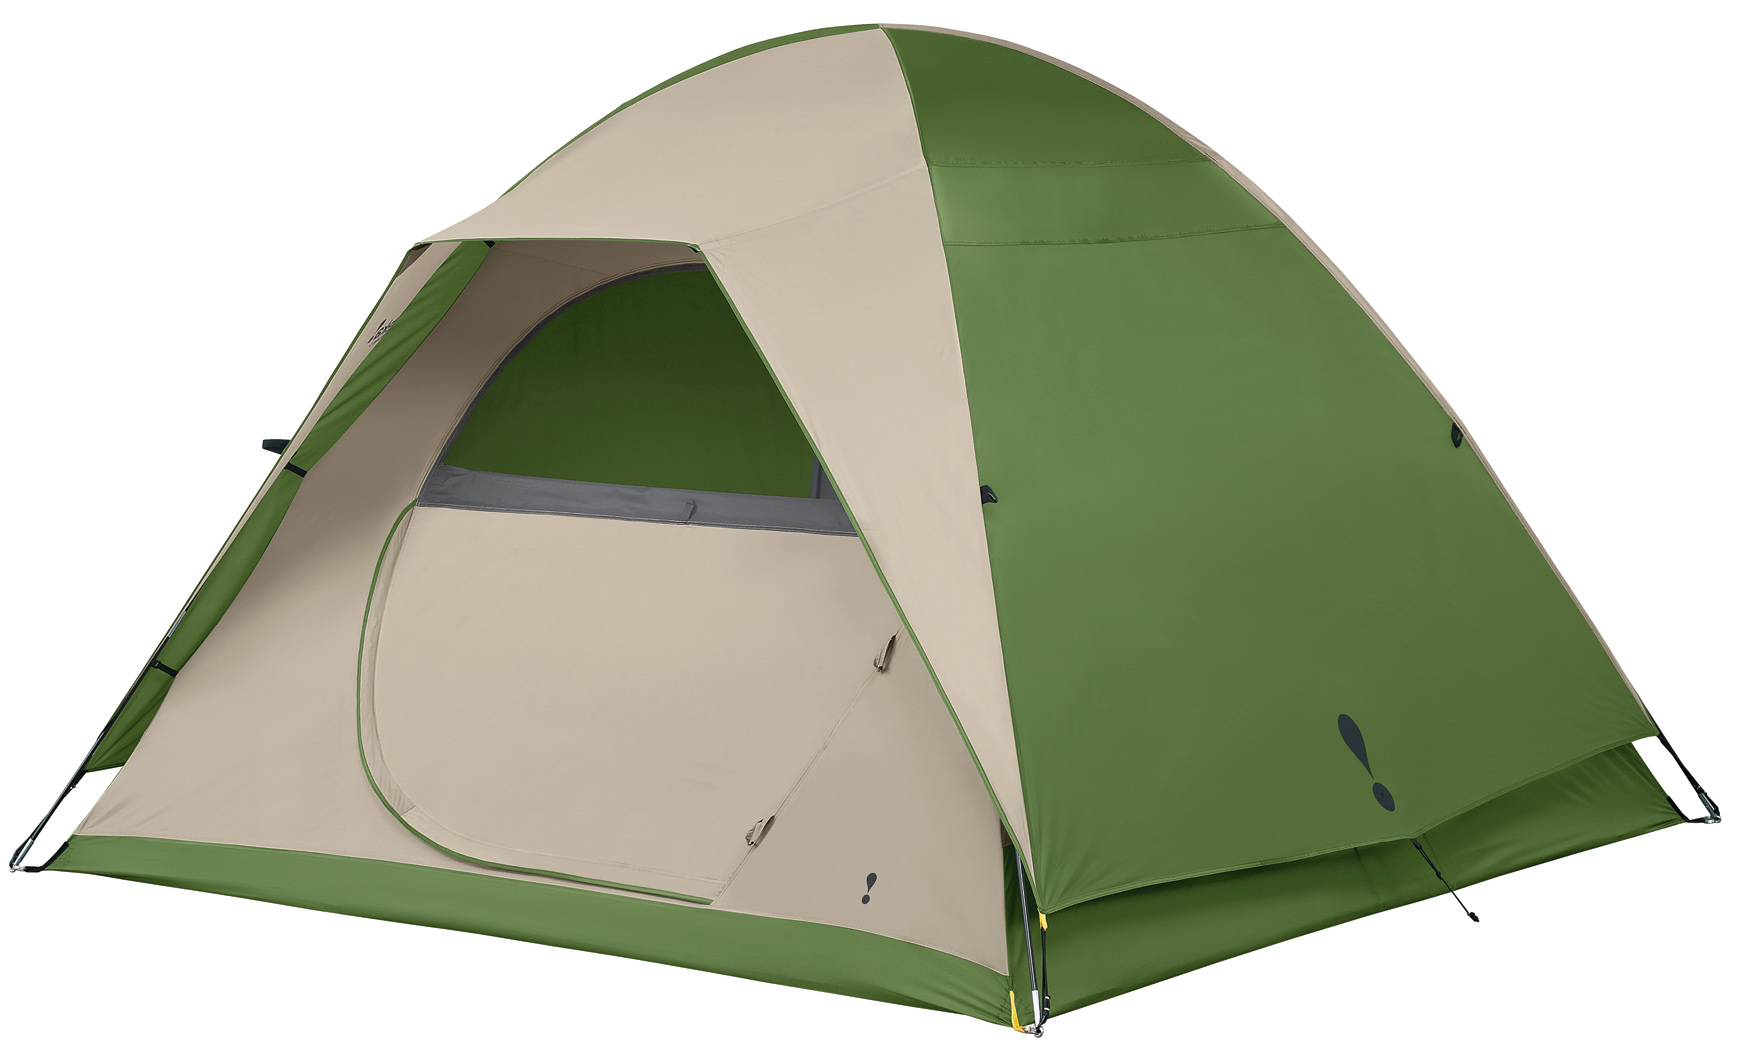 "Camp and Hike Designed for the occasional camper, this five person sized, freestanding dome tent offers easy set-up for convenient weekend campouts.Key Features of the Eureka Tetragon 5 Person Tent: The fly features 2 fly rods that form a brim over the door for protection from the elements and to add strength and stability to the tent. The tent's free standing and shockcorded fiberglass frame is lightweight and easy to set up. Clips secure the tent body to the frame. One side opening, twin track door, consisting of a no-see-um mesh panel and a fabric panel, allows flexibility for venting & insect protection. A zipper cover on the door provides protection from water. Two interior pockets keep essentials close at hand. A gear loft provides extra storage overhead. Matching yellow webbing on tent & fly couple with the ring & pin assembly to make set up fast. Bathtub floor wraps up sides of tent, protecting against splashing and standing water. Sleeps 5 Floor Size 9' x 9' Pack Size 6"" x 28"" Min Weight 12 lbs 6 oz Seasons 3 Tent Area 81 sq ft Center Height 6' Frame 11 mm fiberglass, ring & pin Vents Mesh roof panels Doors 1 Windows 2 Vestibules N/A Vestibule Area N/A Gear Loft 1 Included Gear Loft Loops 4 Flashlight Loop 1 Storage Pockets 2 Wall 75D 185T polyester taffeta, 800 mm coated Fly 75D 185T polyester taffeta, 800 mm coated Floor 75D 210T polyester taffeta, 800 mm coated Mesh 50D polyester no-see-um - $156.95"